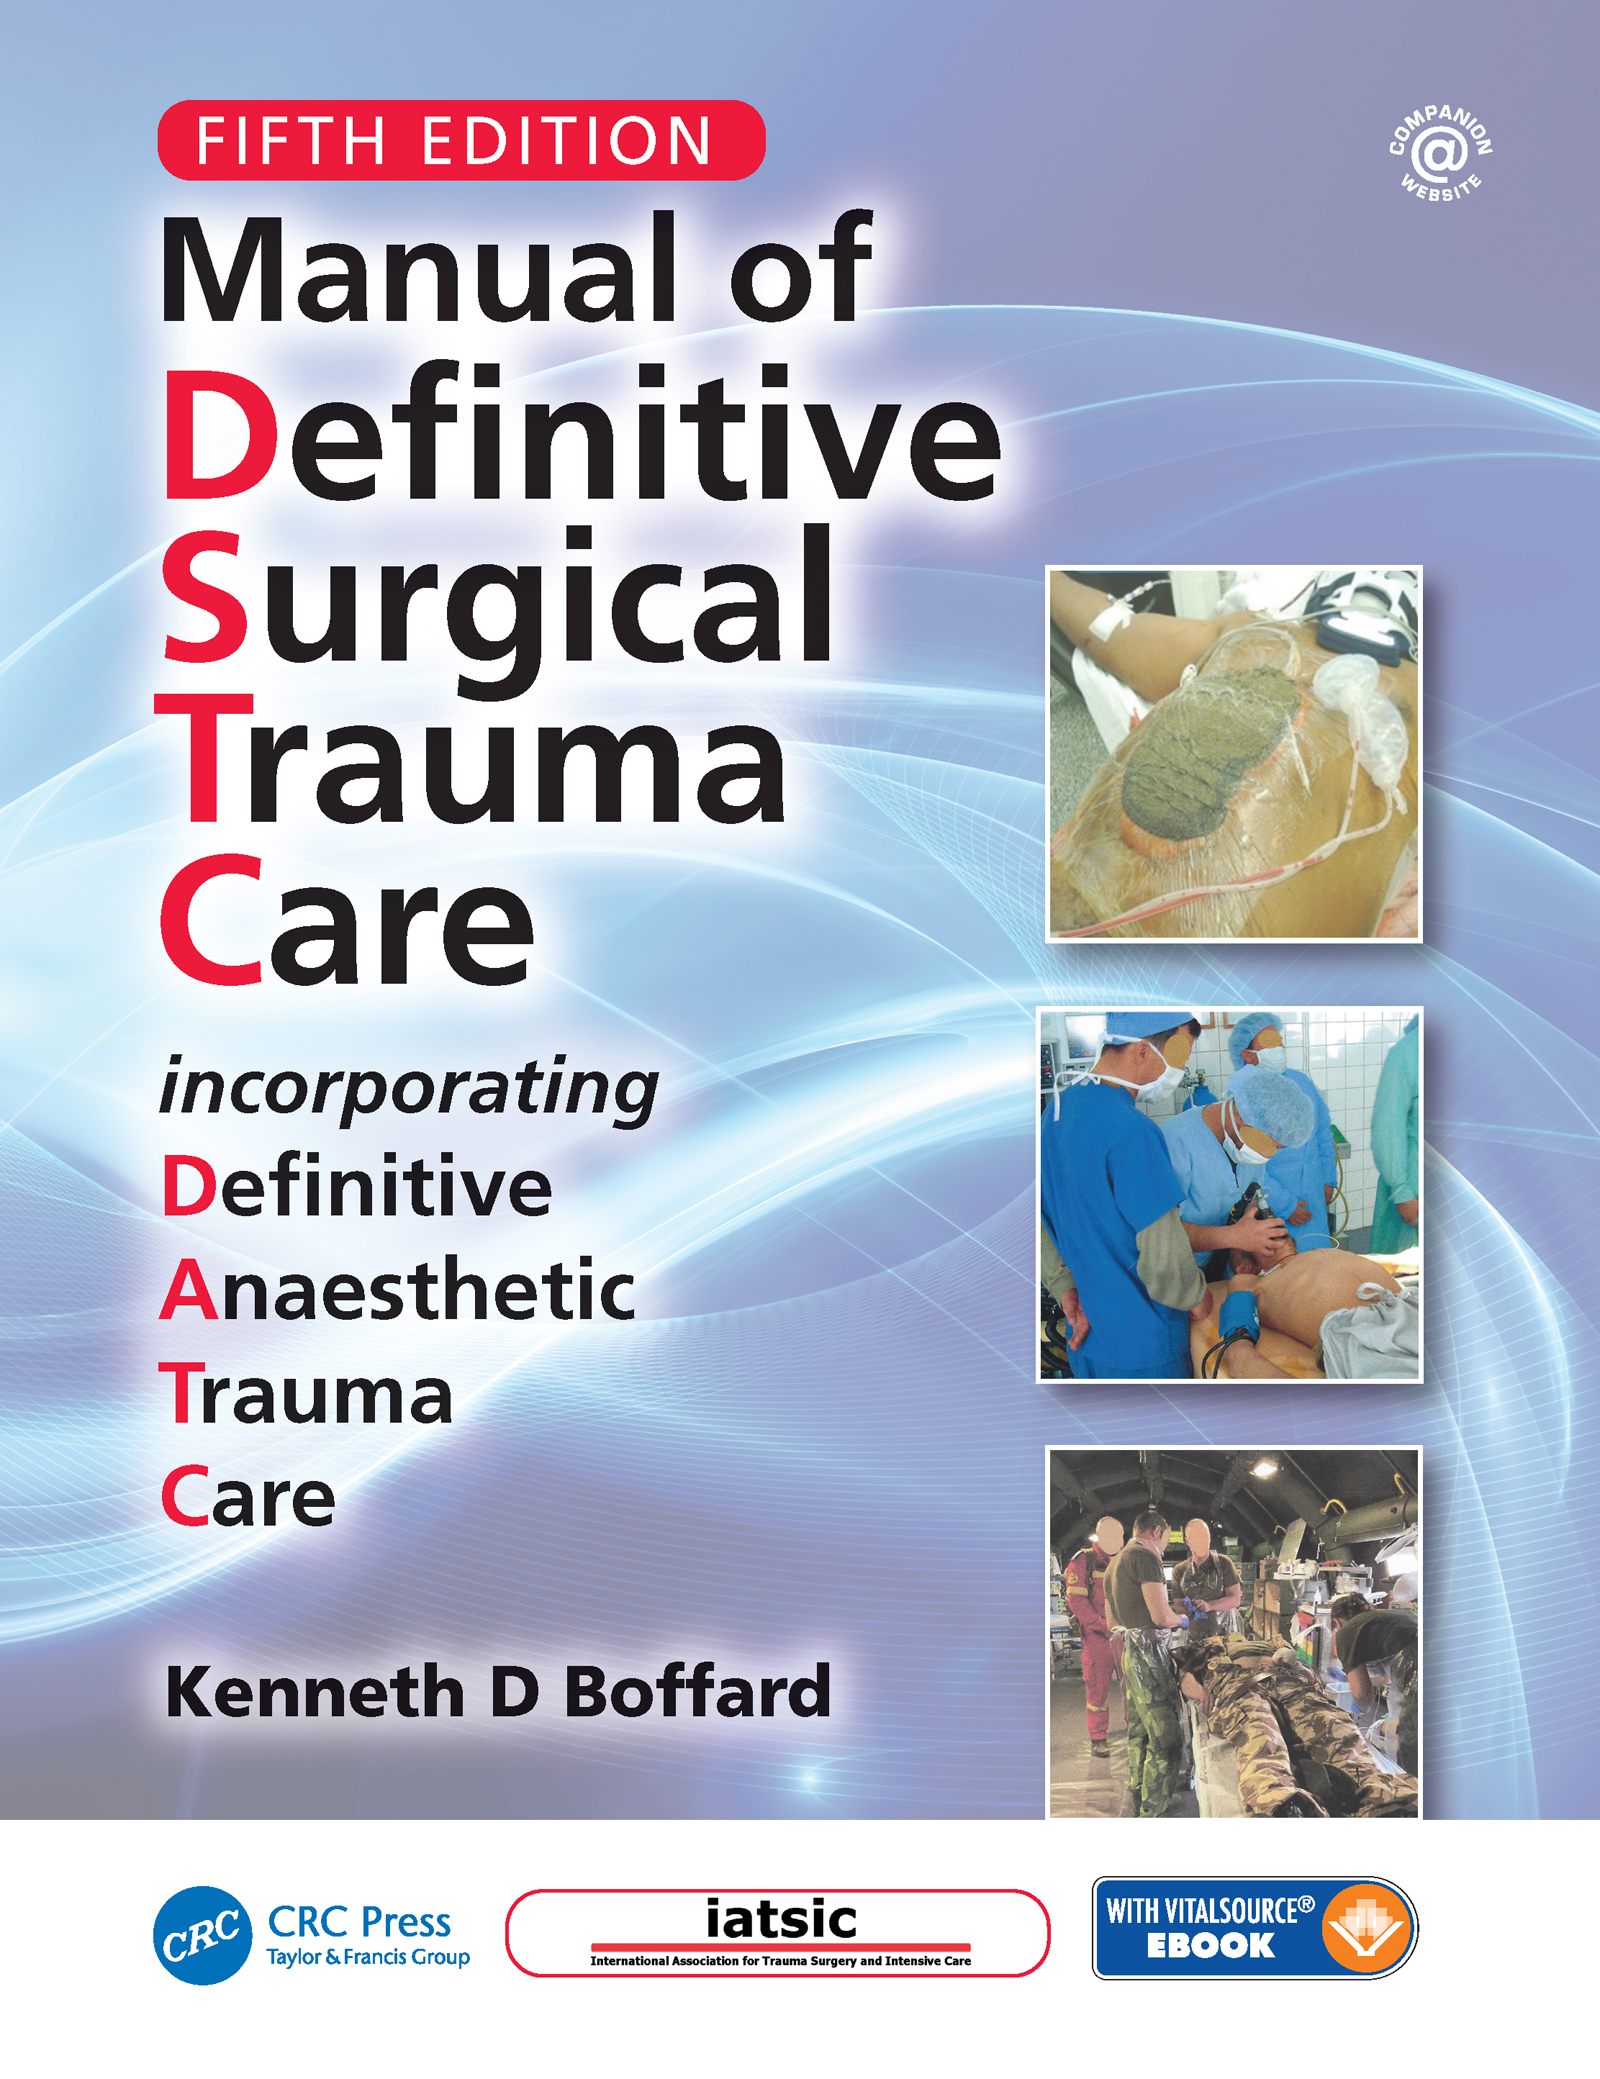 Manual of Definitive Surgical Trauma Care, Fifth Edition book cover